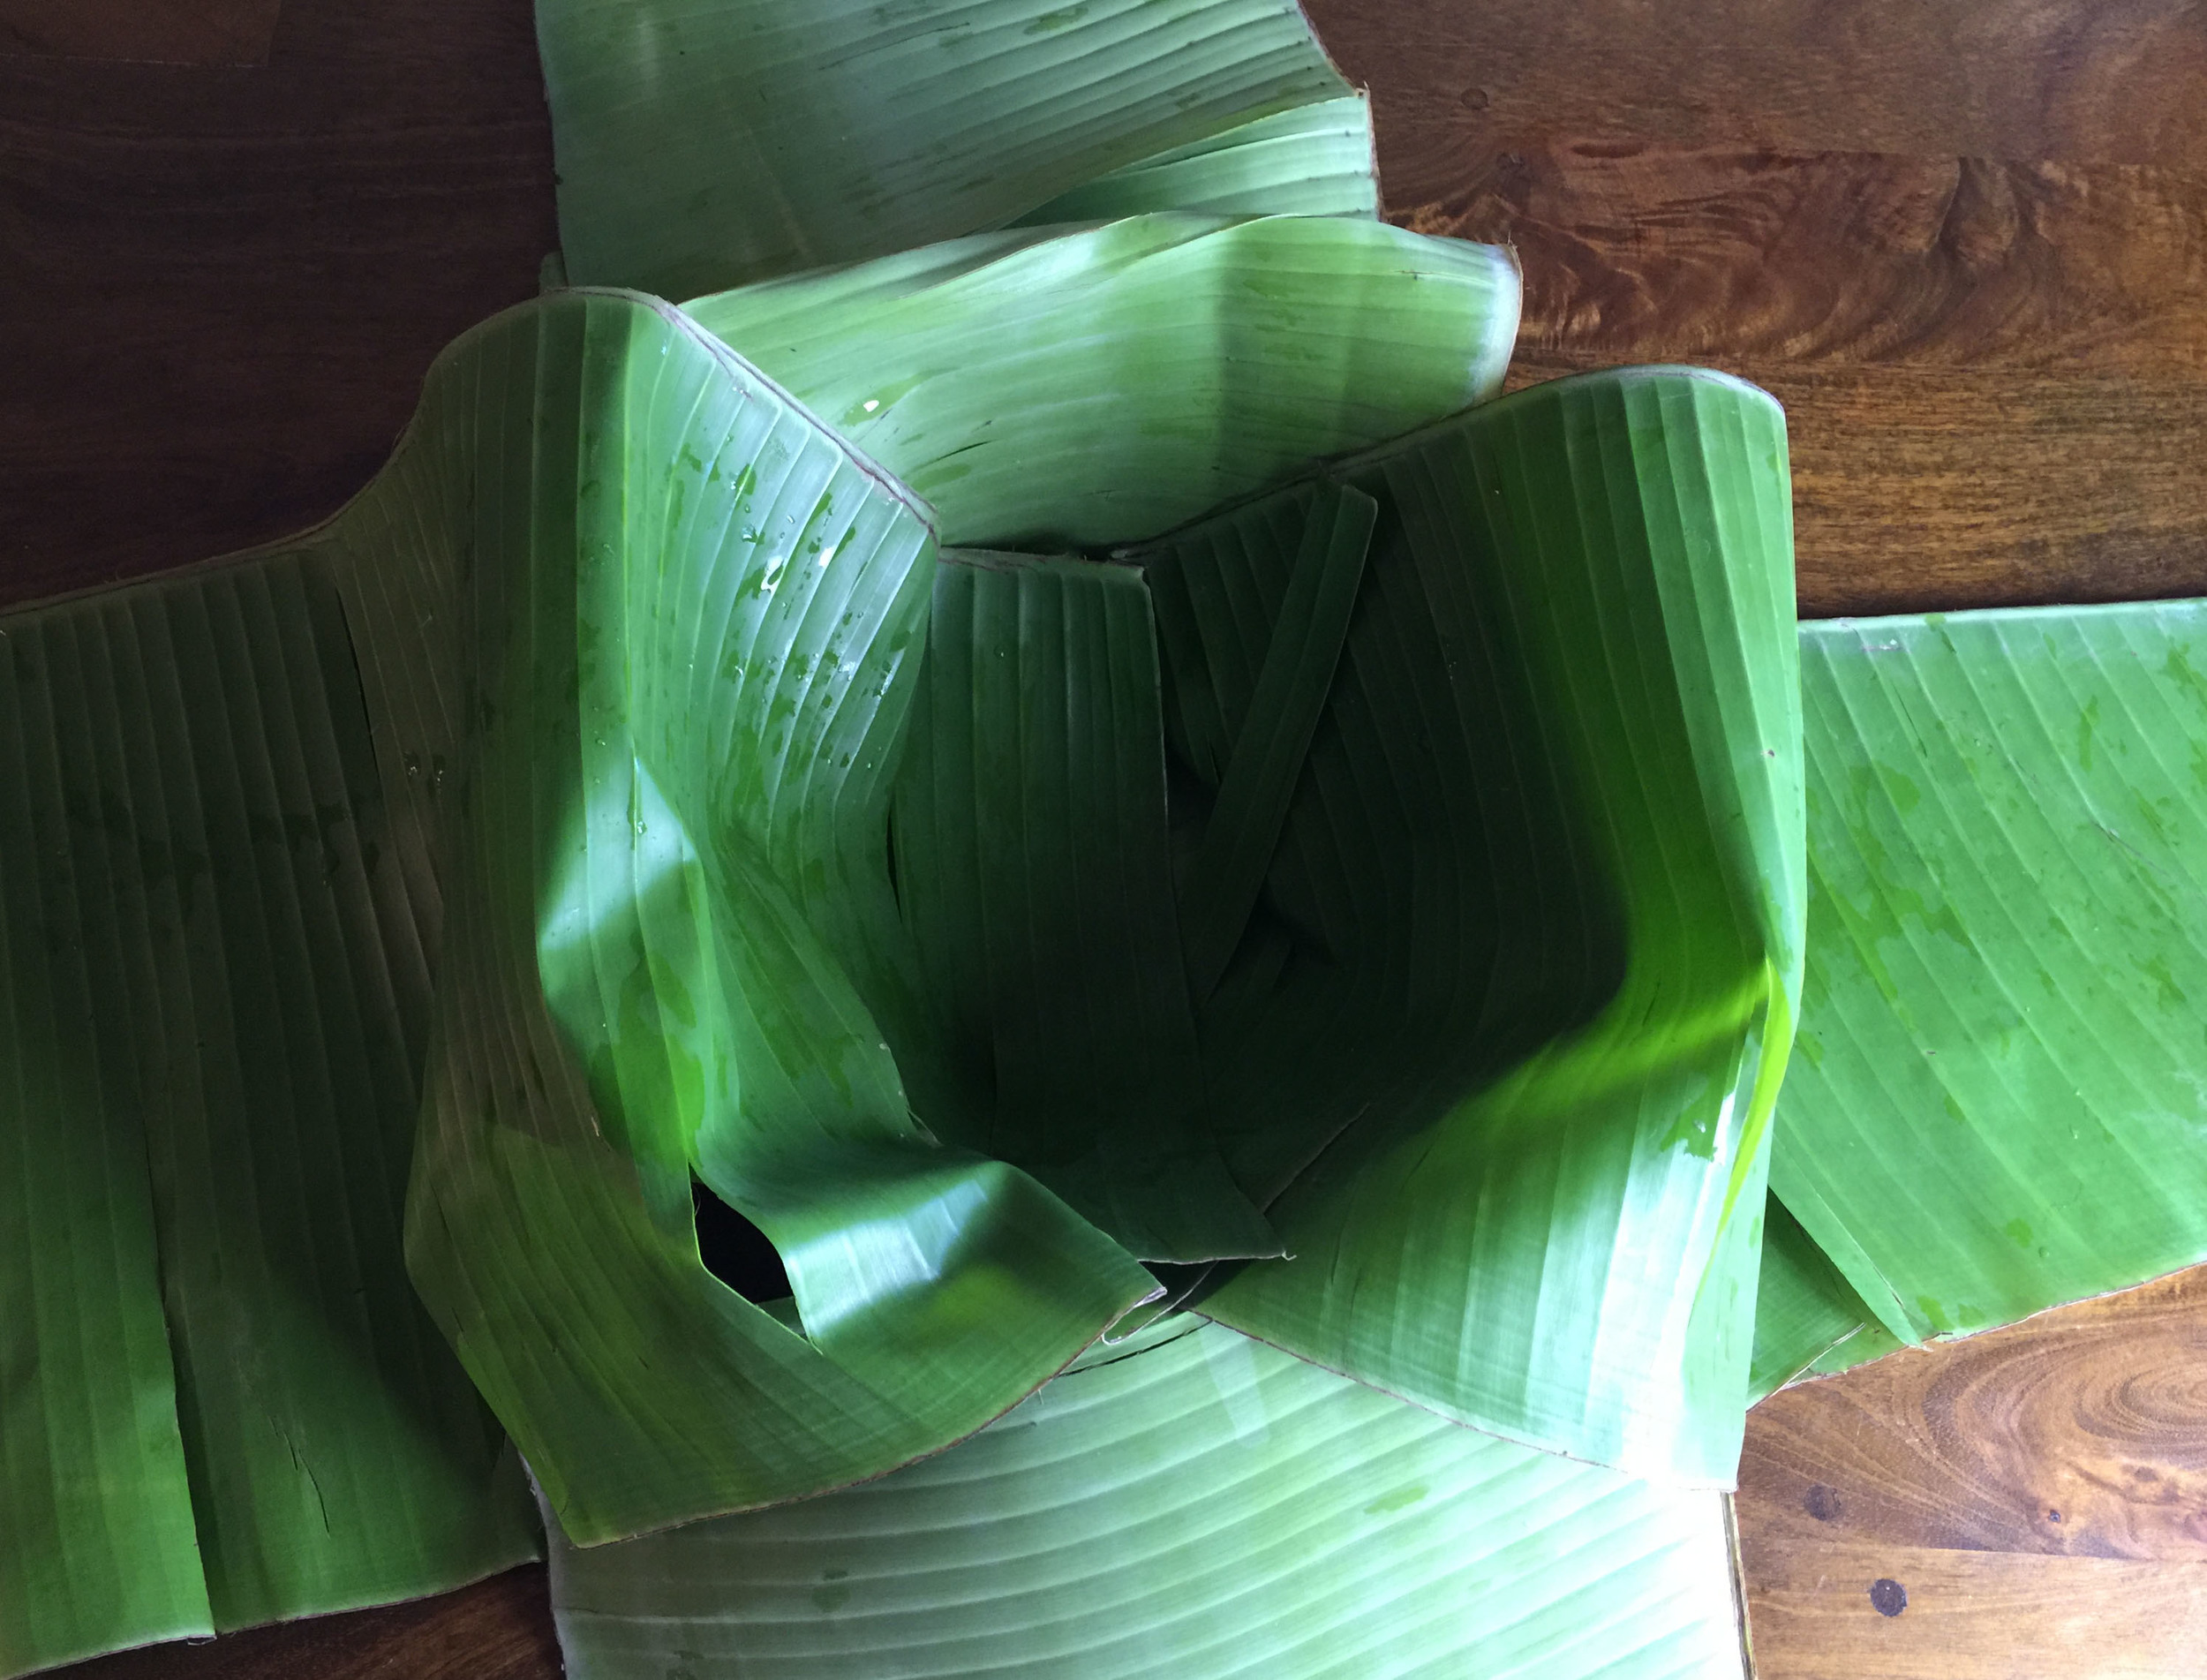 Banana leaves lining the Dutch oven